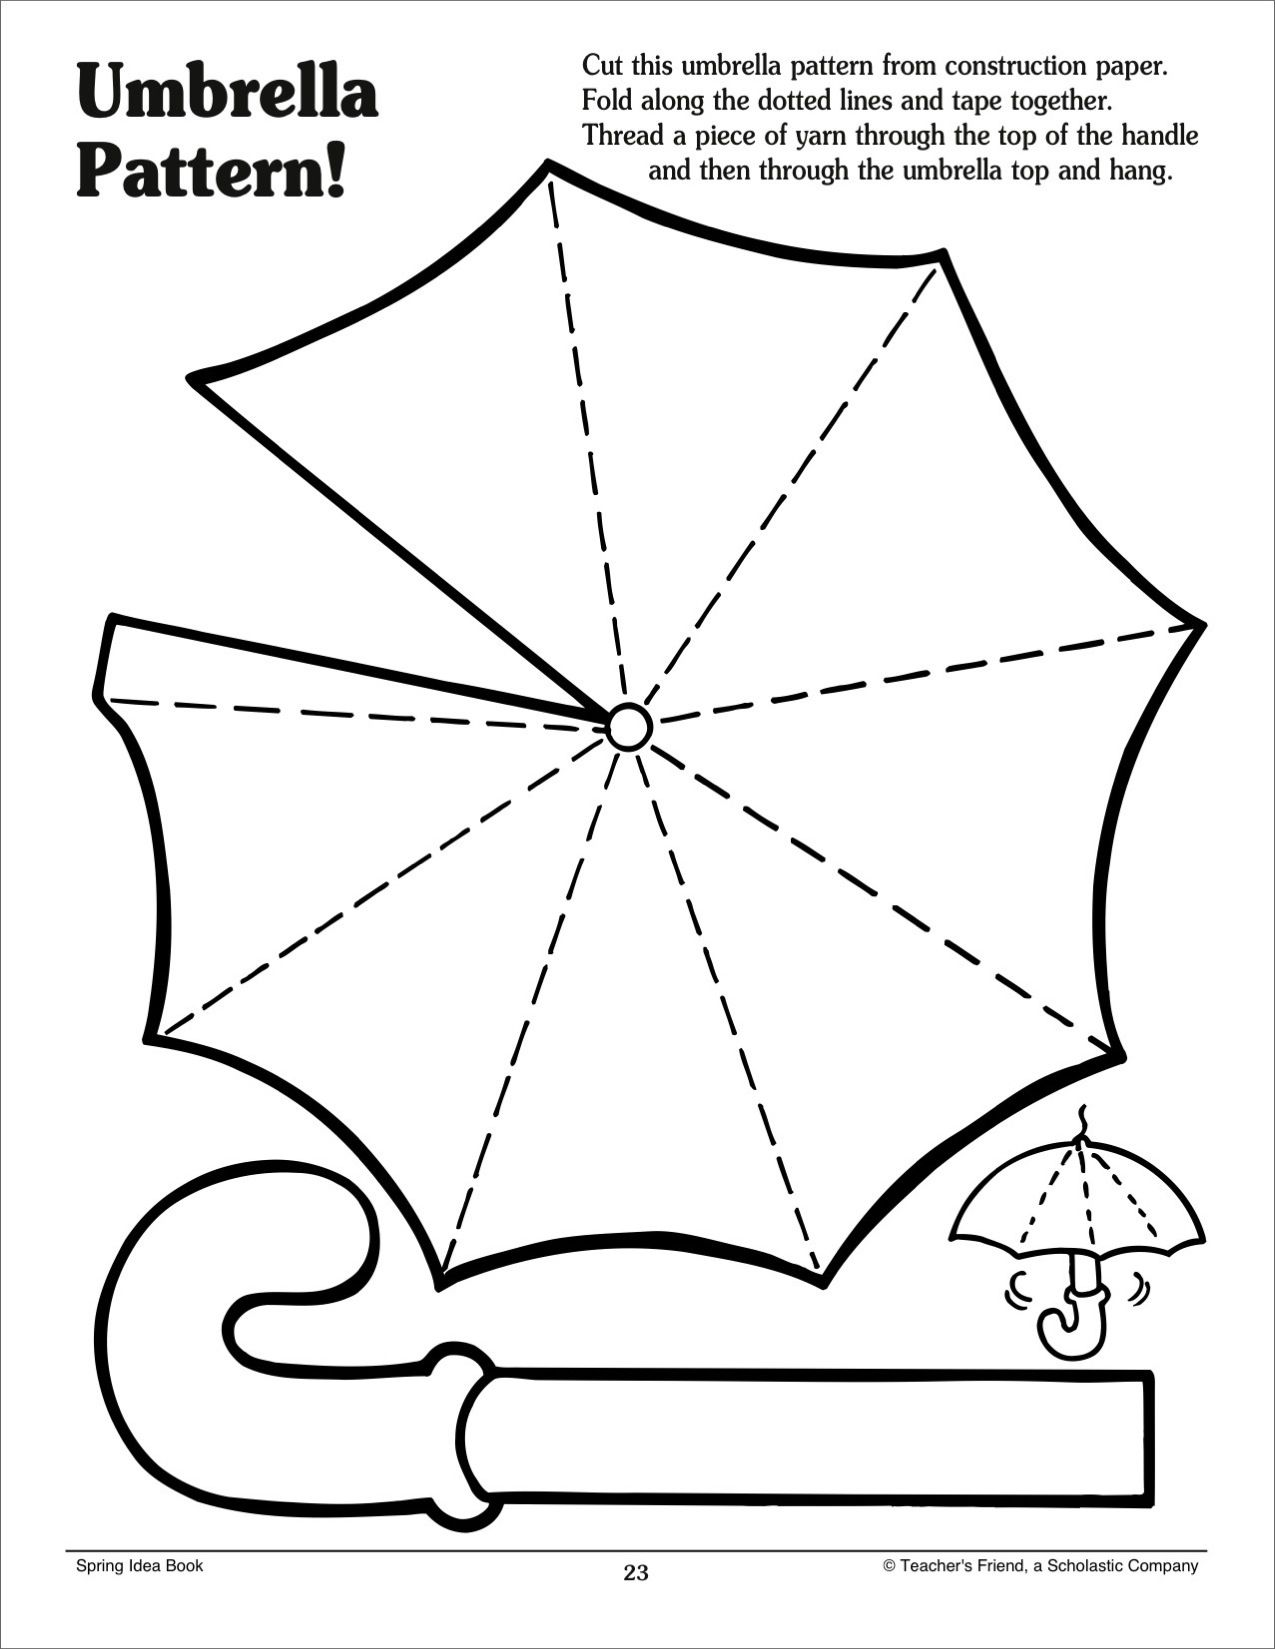 picture about Umbrella Pattern Printable identify Umbrella Routine - Scholastic Printables Templates